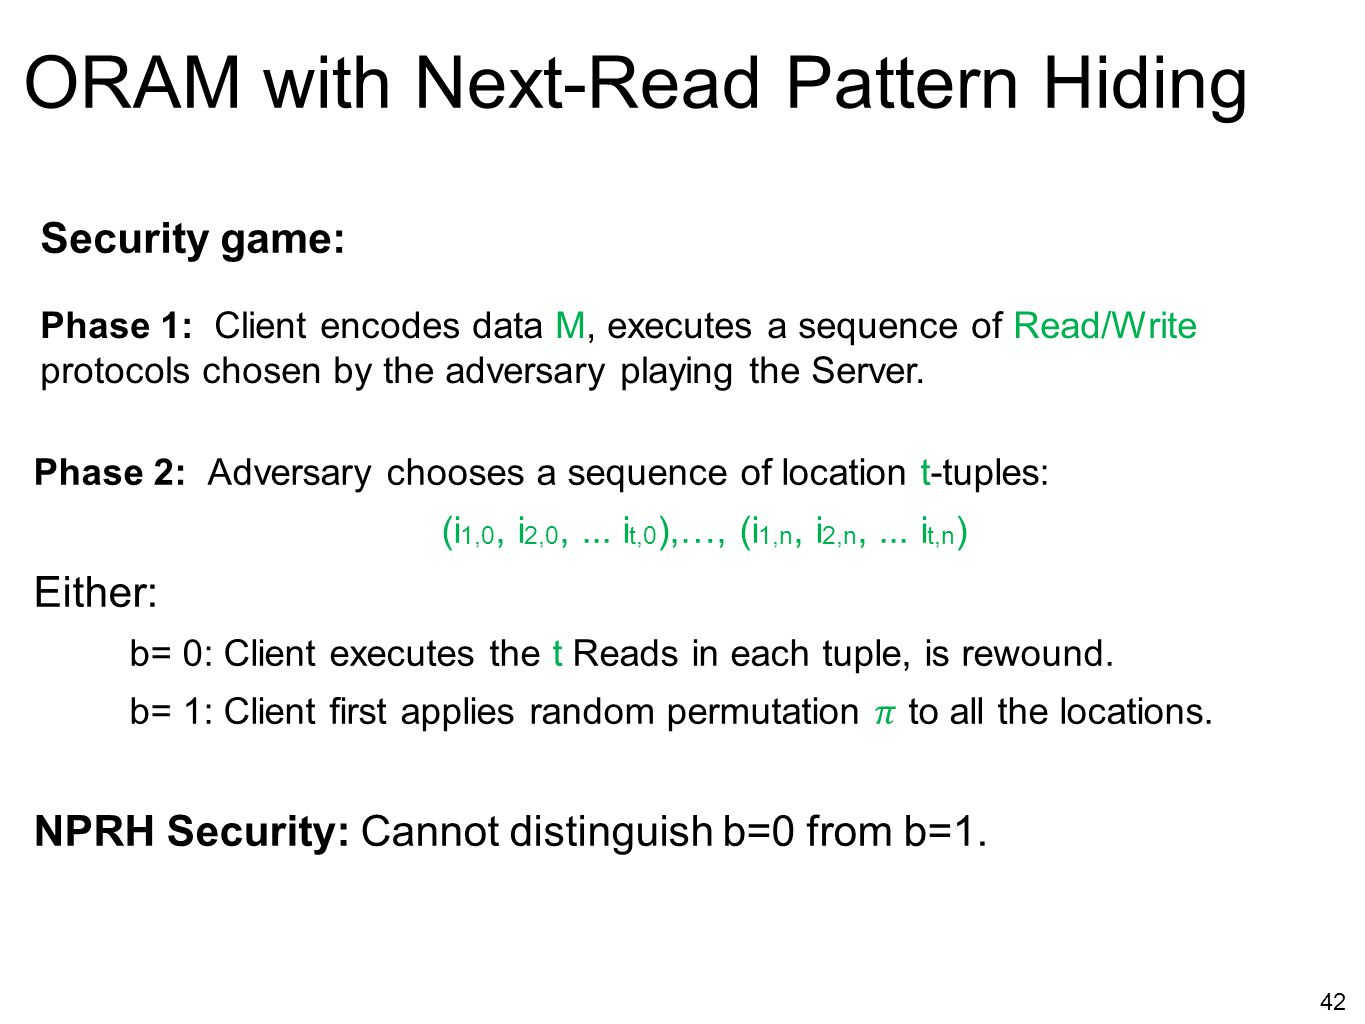 ORAM with Next-Read Pattern Hiding